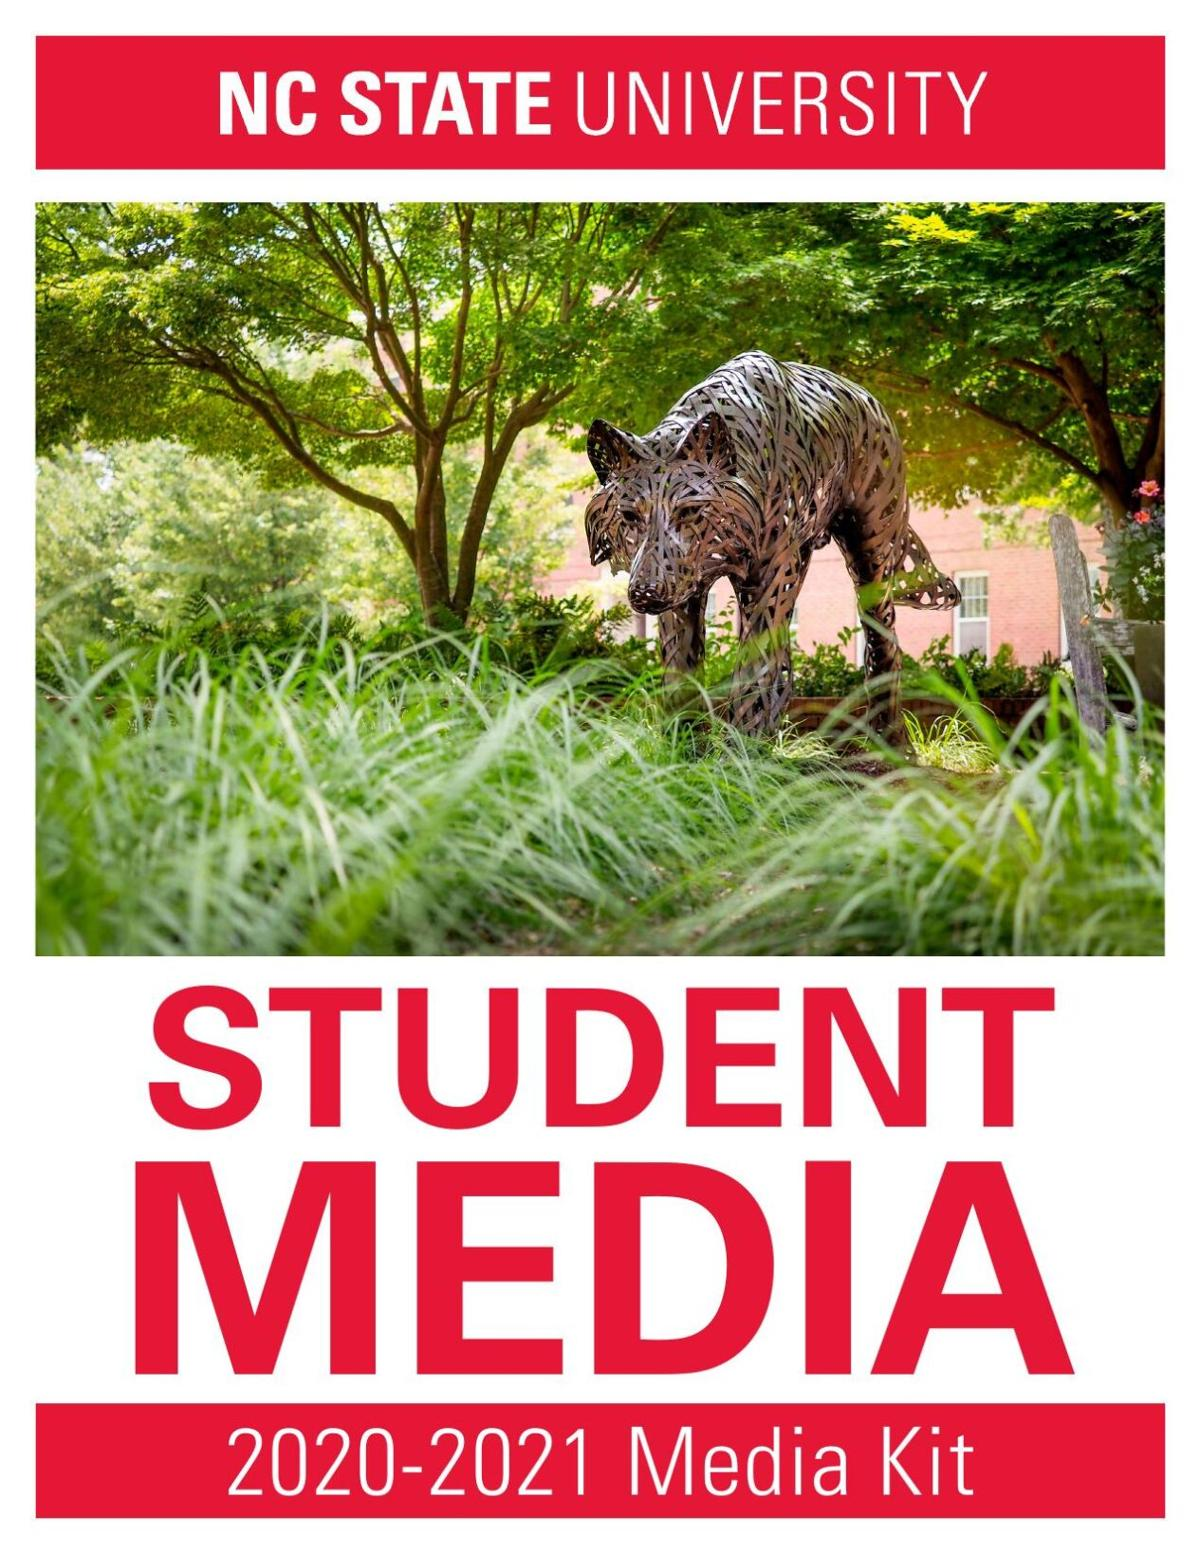 NC State Student Media Rate Card 2020-2021